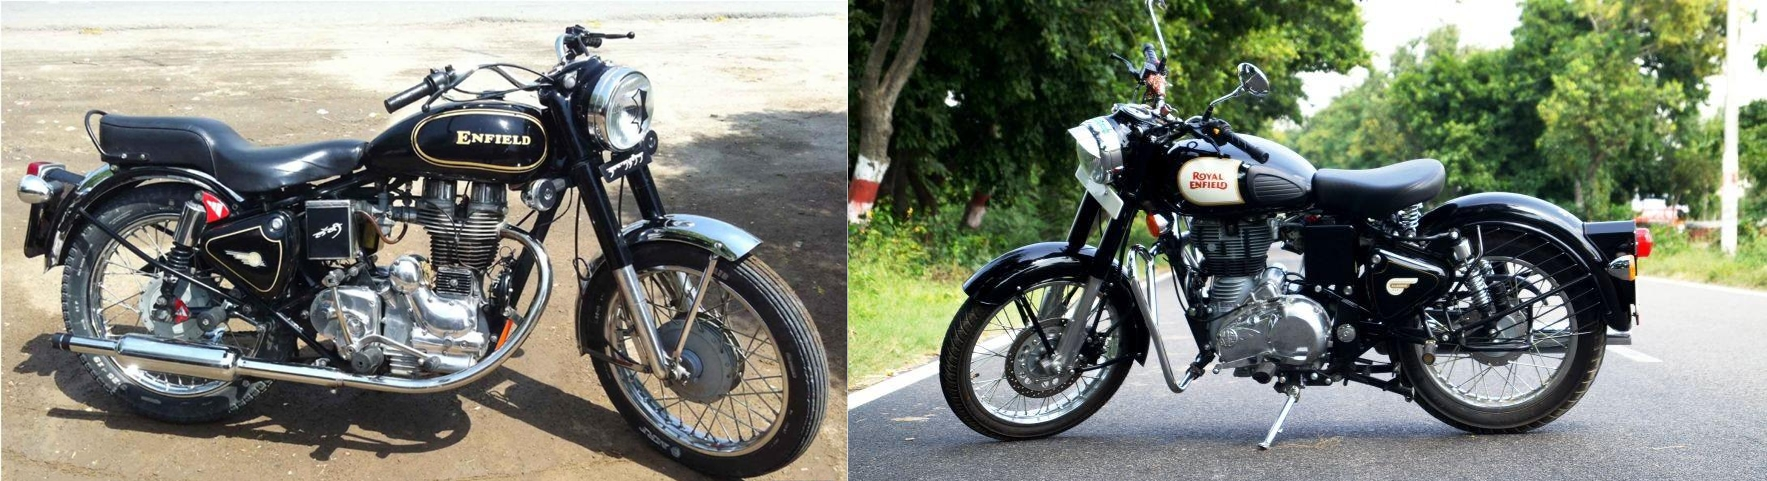 ROYAL ENFIELD. Old Titans or New Nimble!! The wrangle continues..